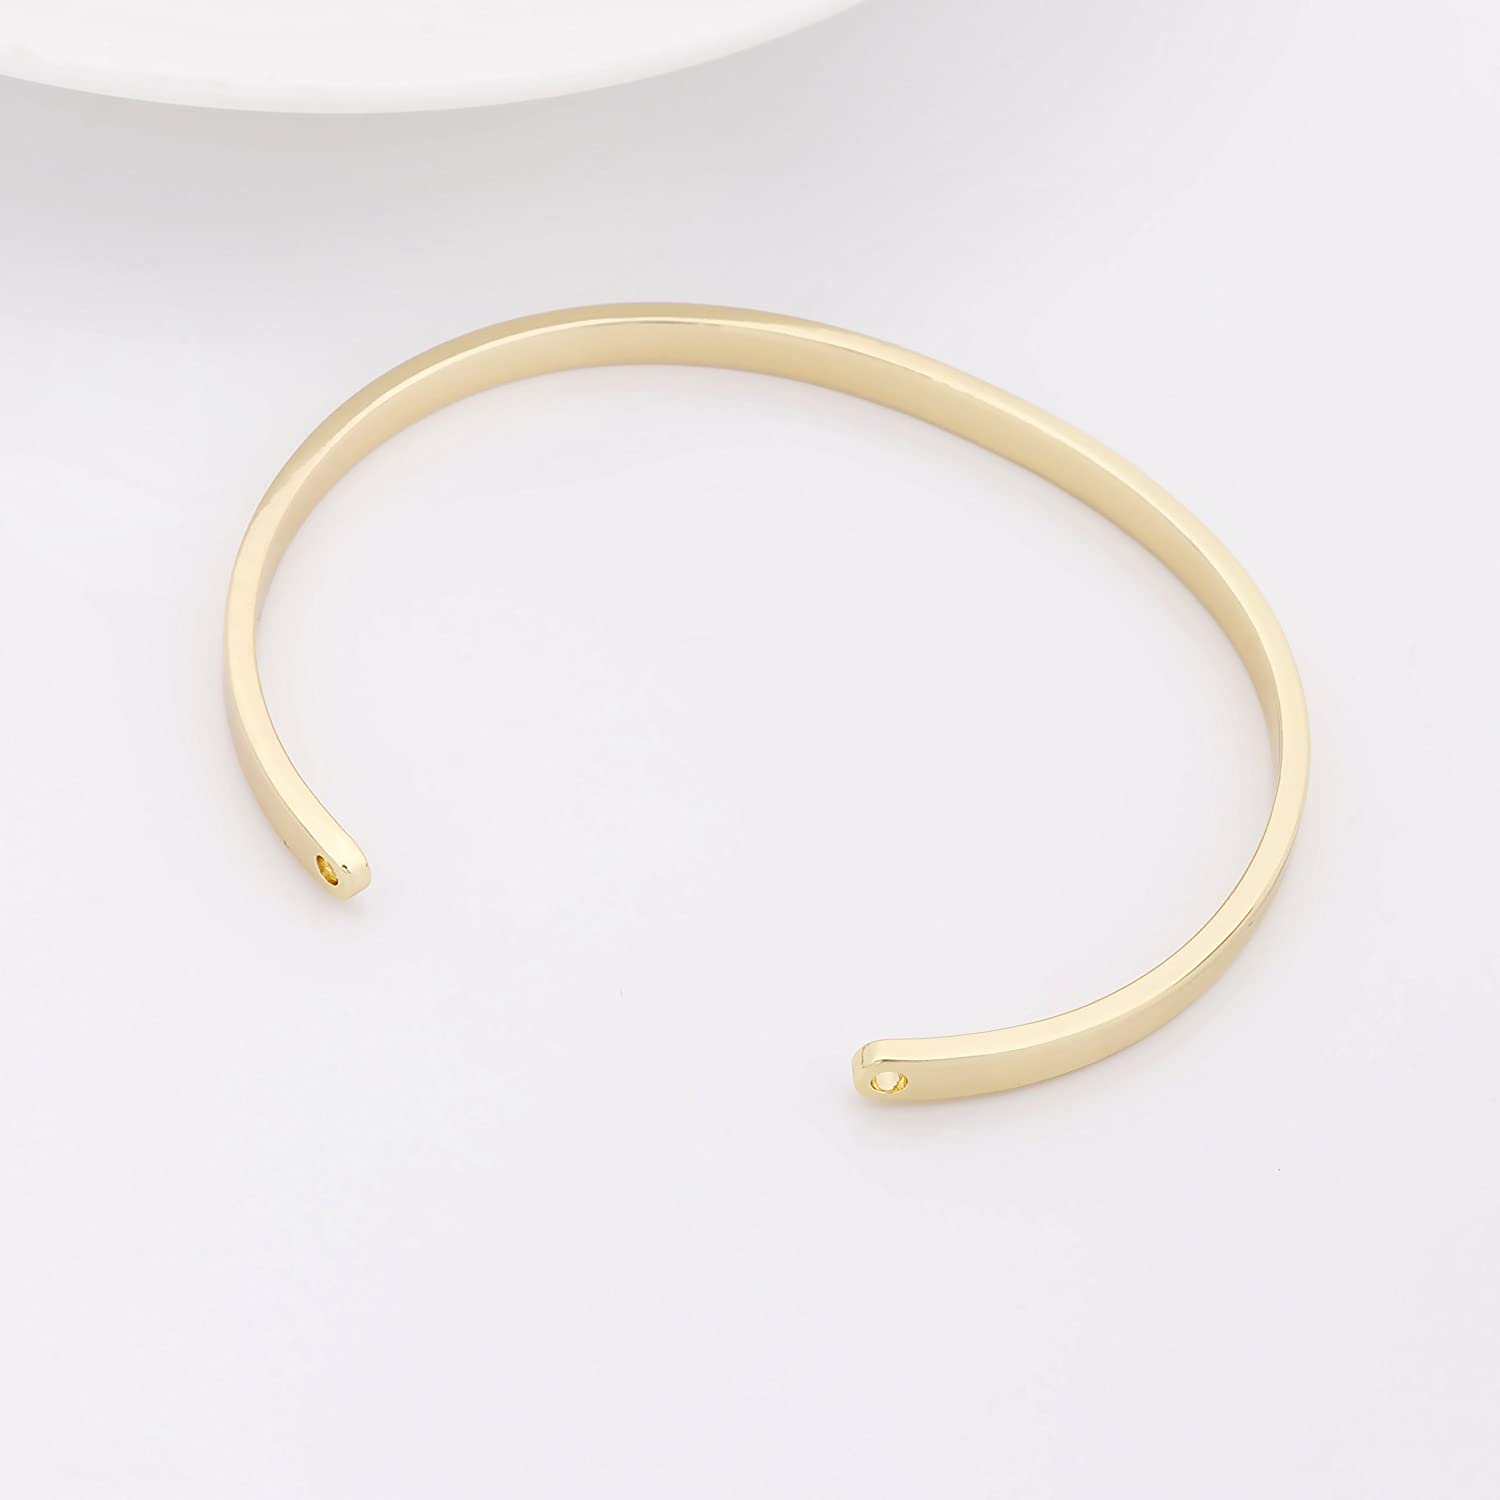 GUANDU Simple Style You Are Not Alone Cuff Bracelet for Women Girls Gifts